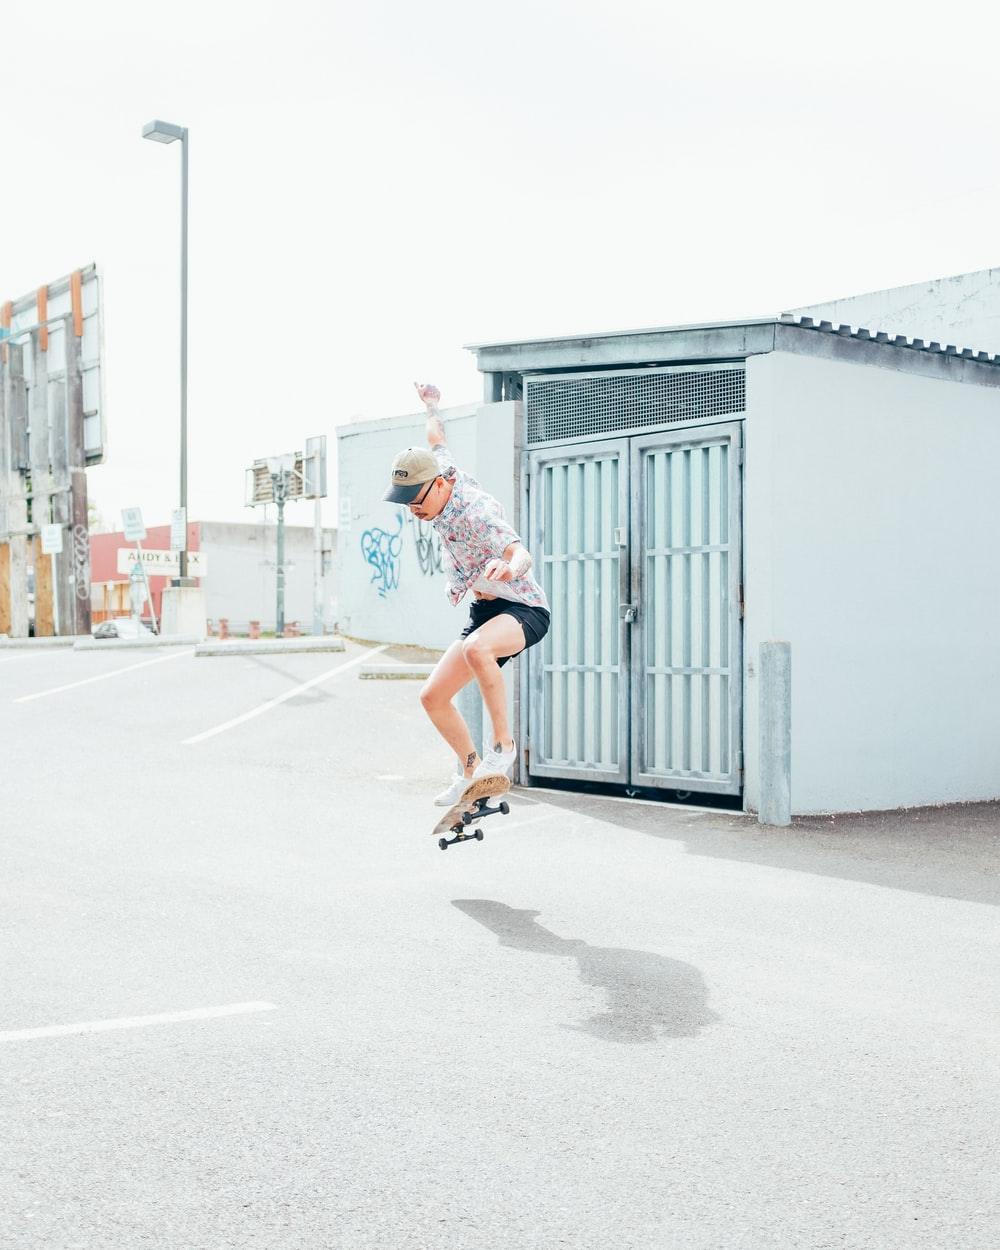 woman in white t-shirt and red shorts running on road during daytime